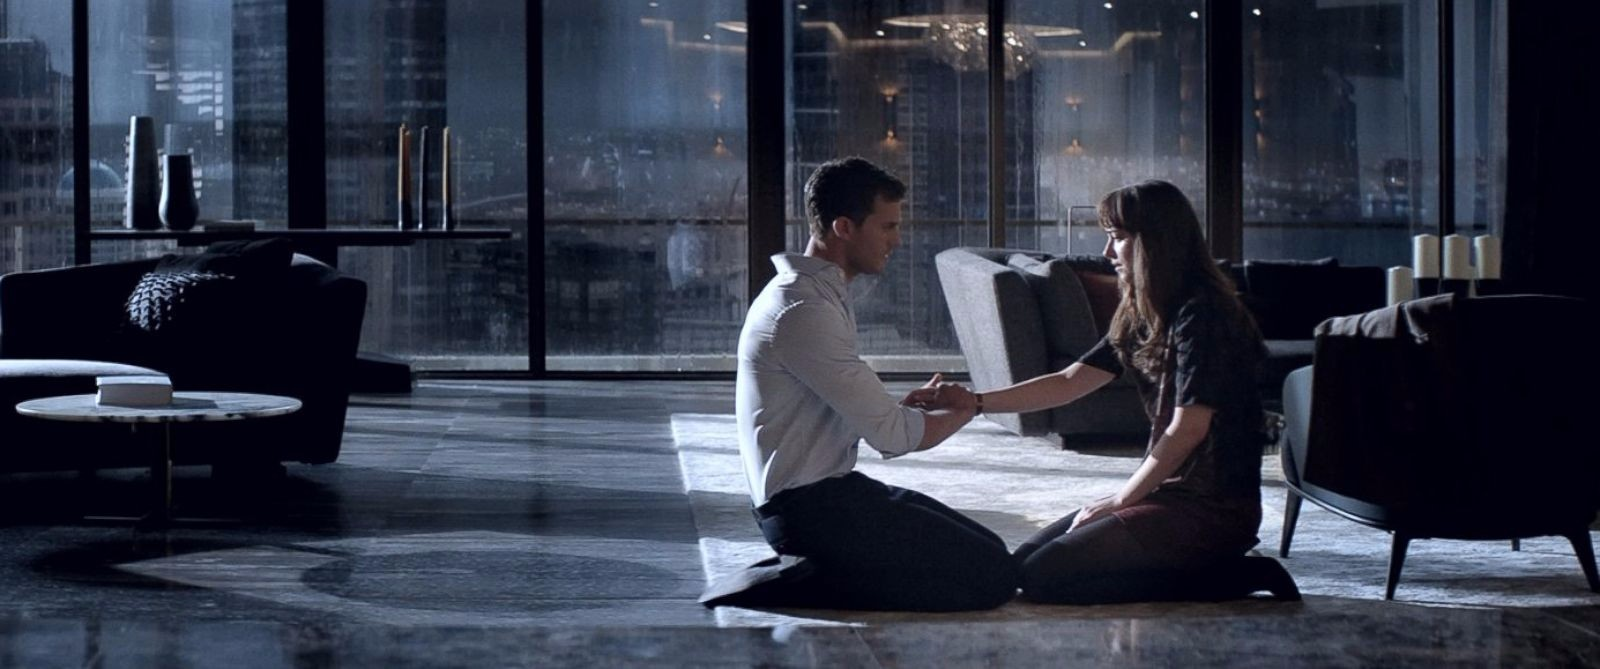 Christian begs Ana to stay with him, to not leave him alone with his thoughts.